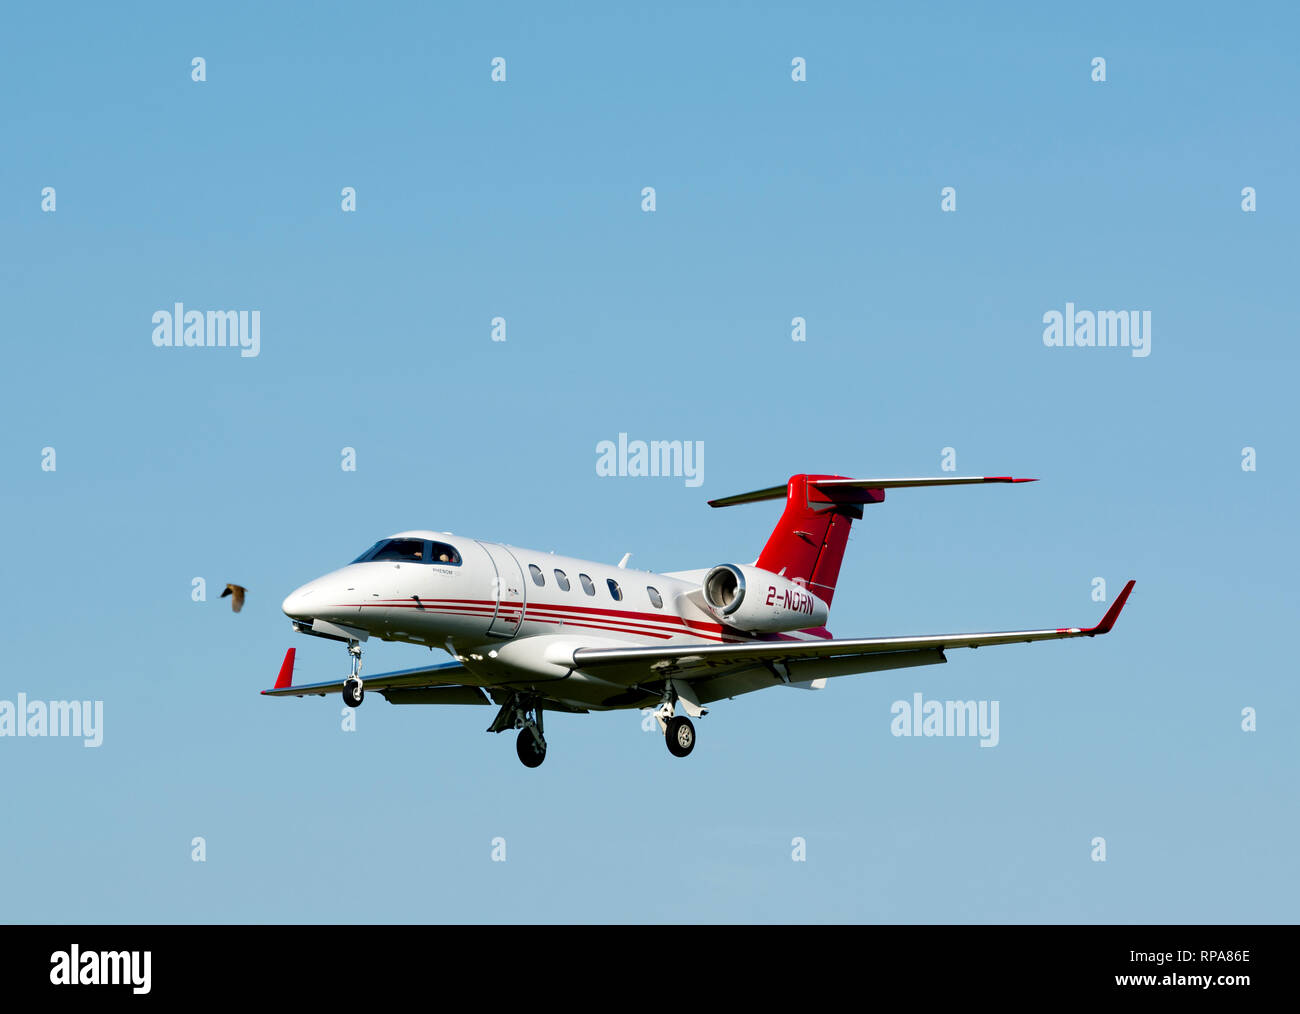 Embraer Phenom 300 at Wellesbourne Airfield with Skylark flying, Warwickshire, UK (2-NORN) - Stock Image